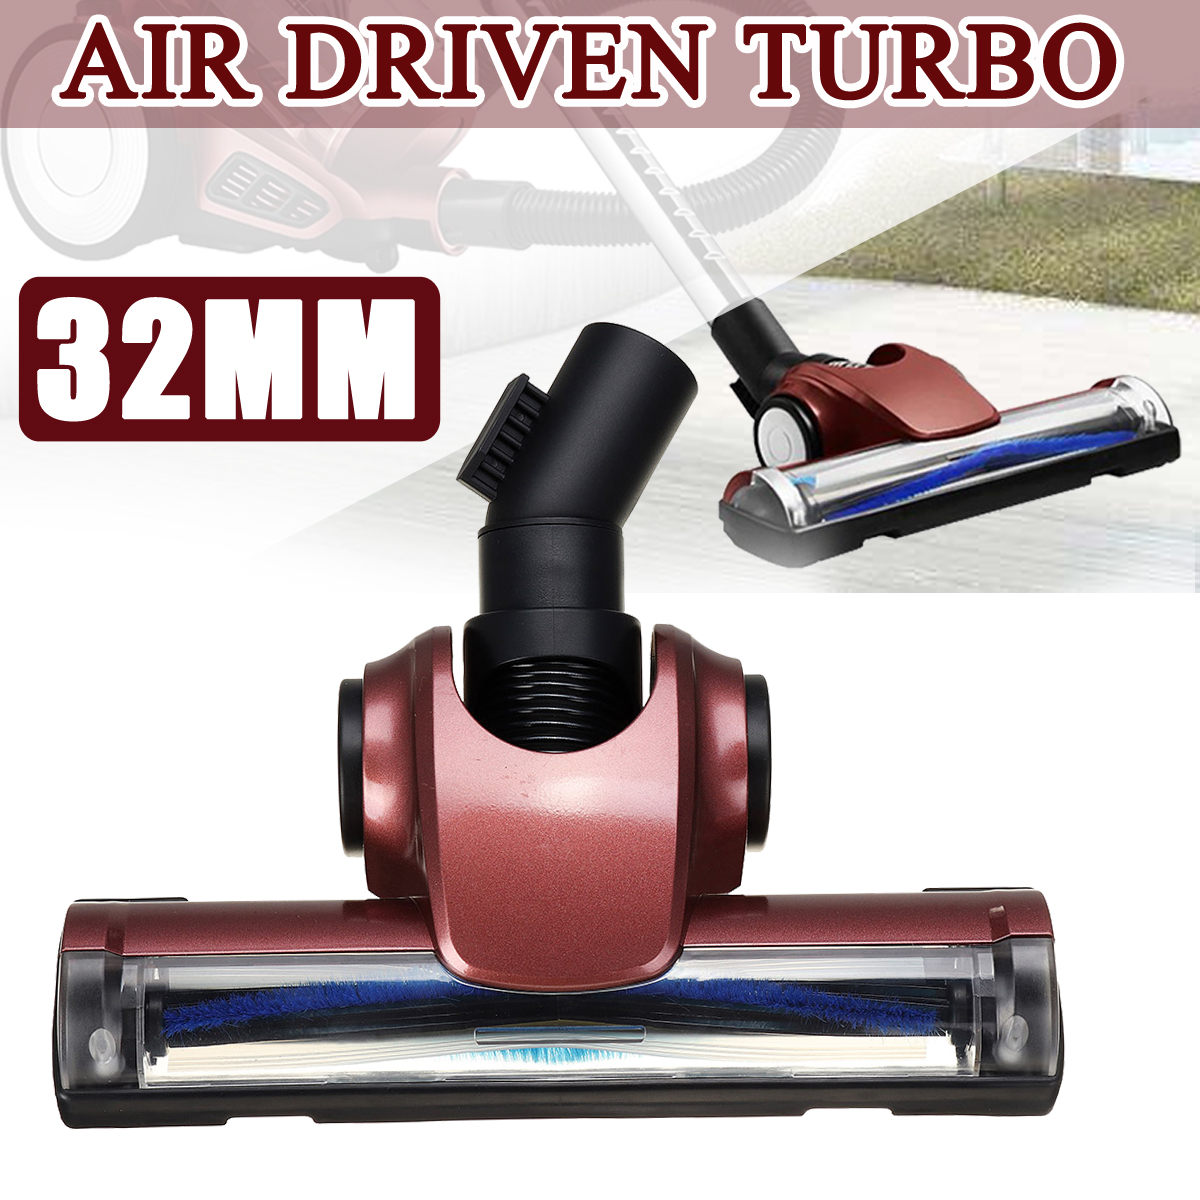 32mm Universal Vacuum Cleaner Brush Floor Cleaner Head Air Driven Vacuum Turbo Carpet Brush For Dyson DC52 DC58 DC59 V6 DC62 hi q 21 6v 2200mah li ion rechargeable battery replacement for dyson battery dc61 dc62 dc72 dc58 dc59 965874 02 vacuum cleaner